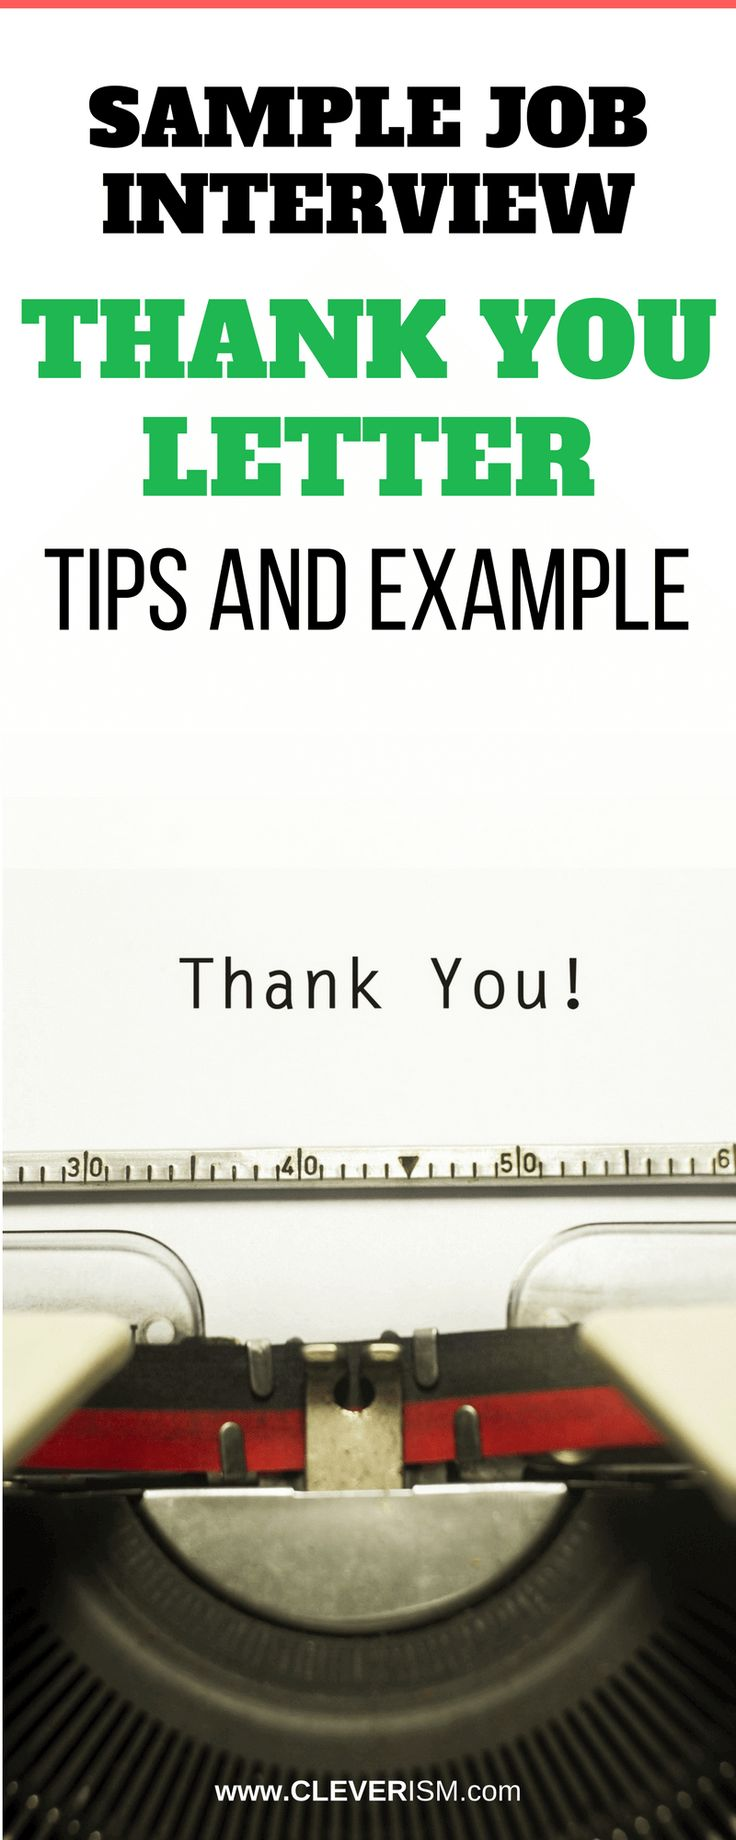 The 25 best thank you interview letter ideas on pinterest sample job interview thank you letter tips and example aljukfo Images